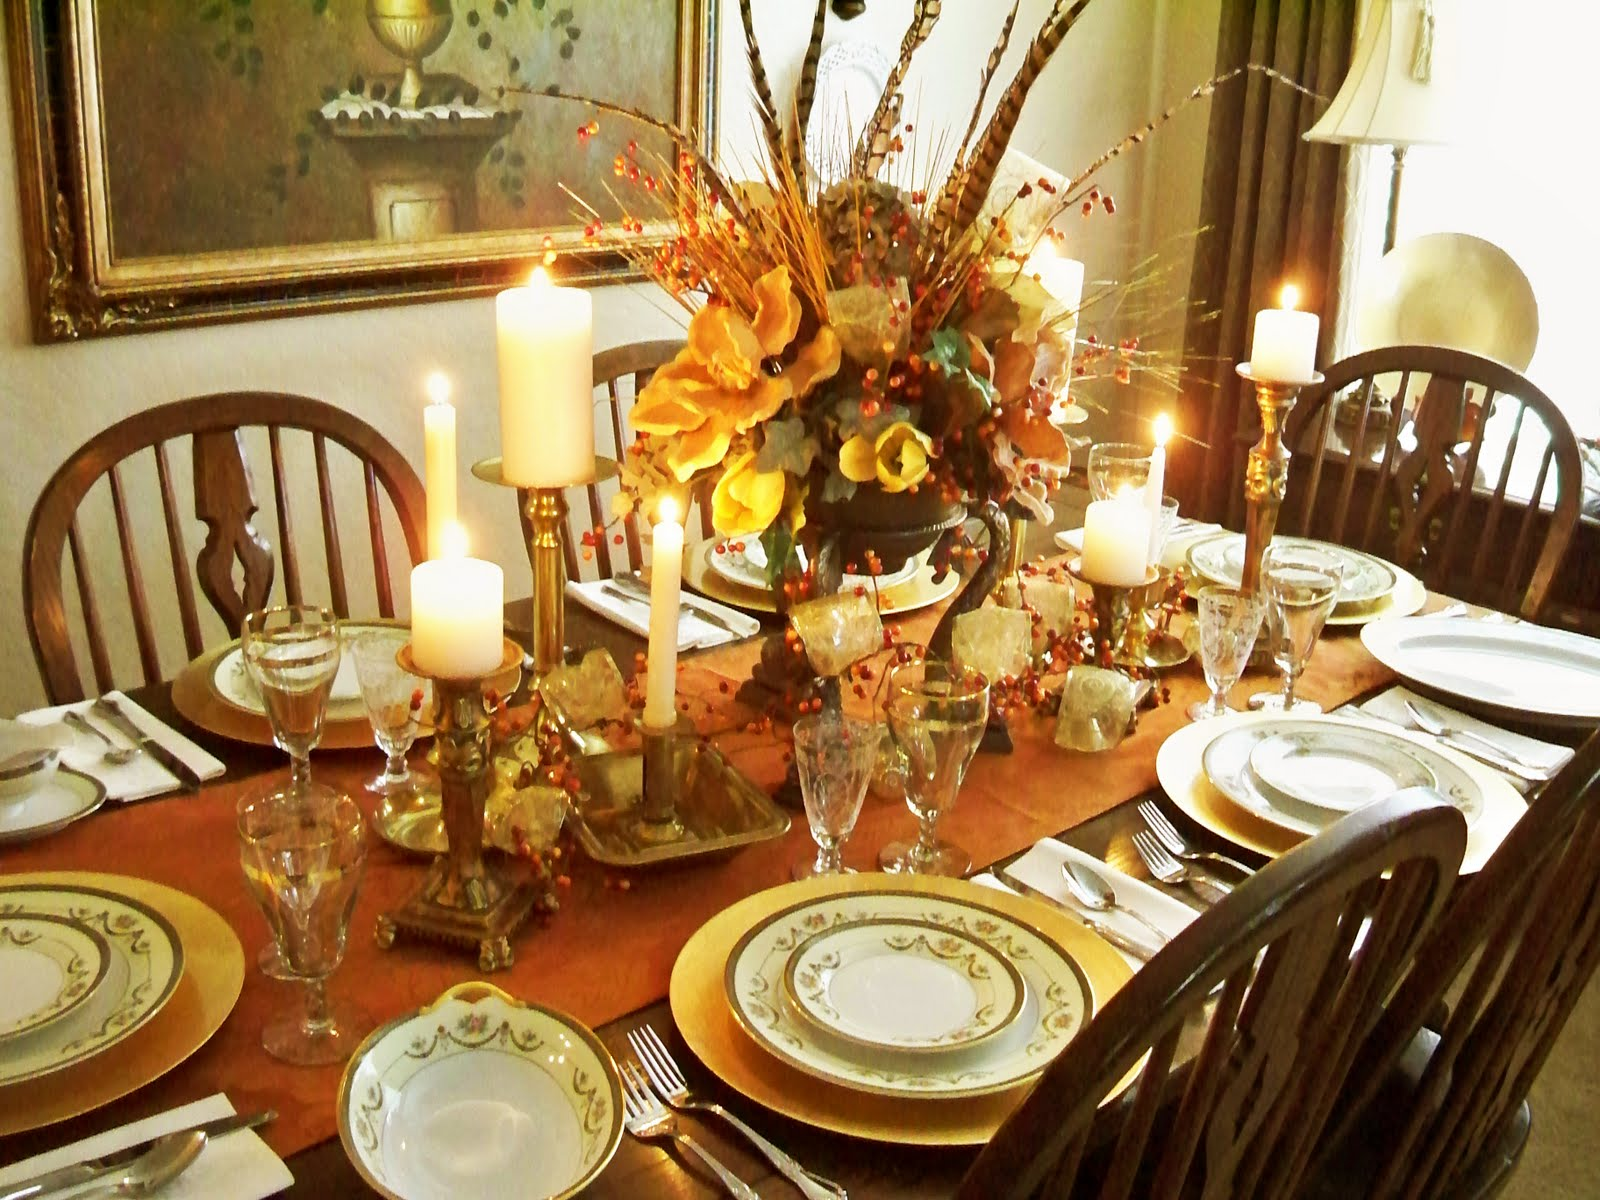 A final view of the entire table. & A Stroll Thru Life: Tablescape Thurs. - Thanksgiving Dinner